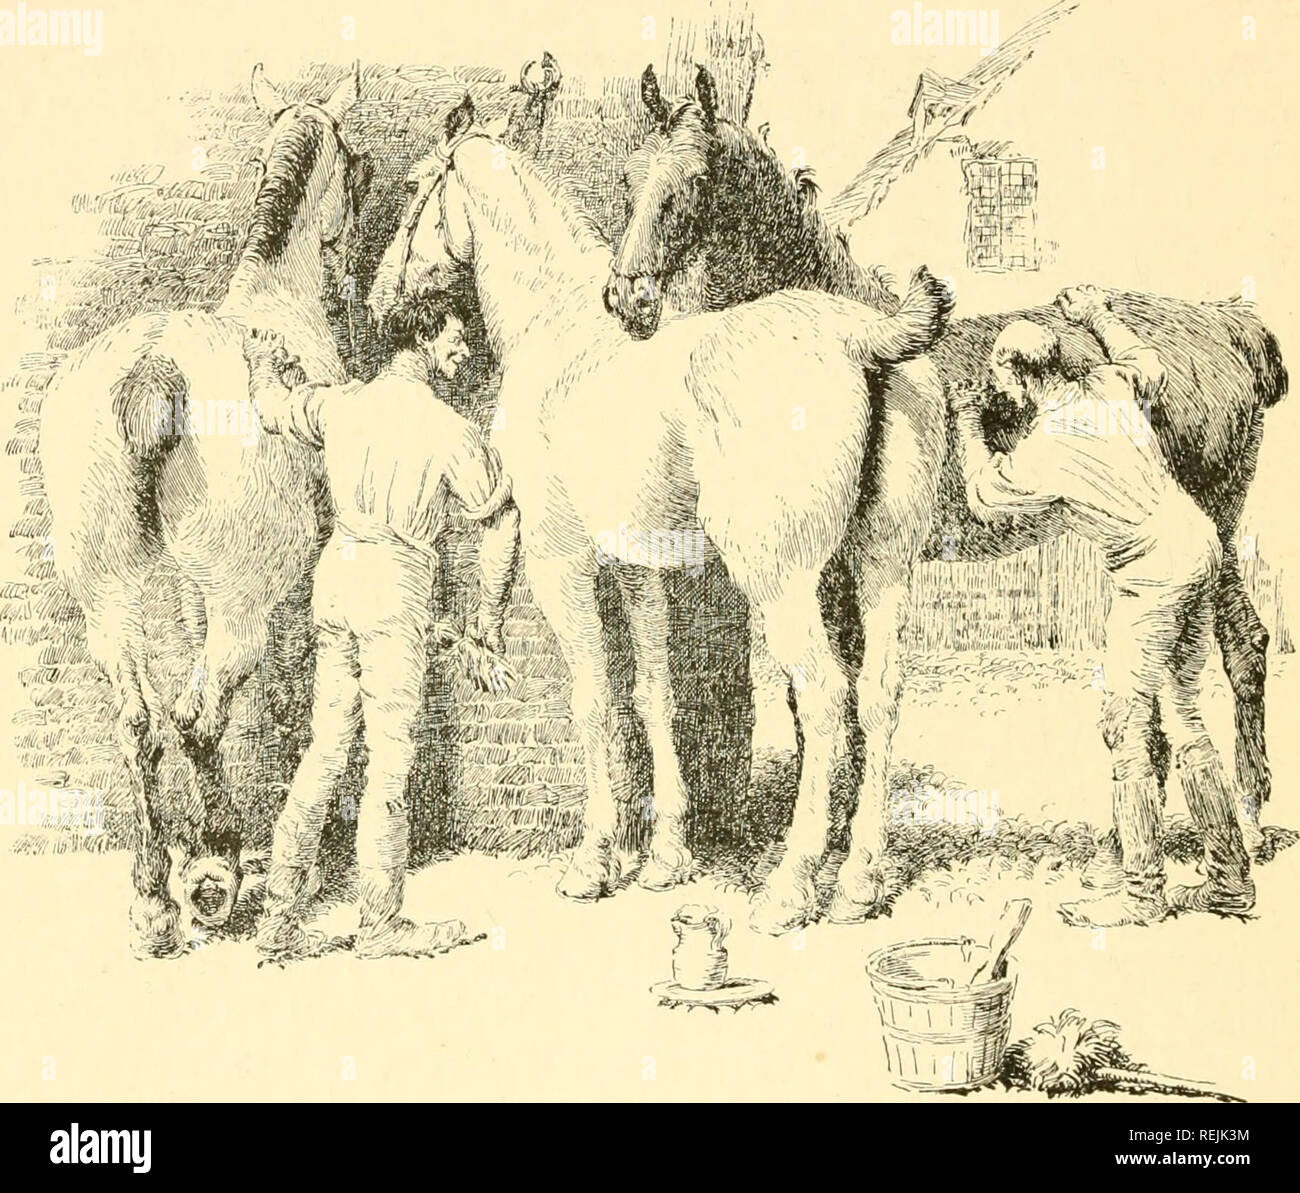 . Coaching days & ways. Horses; Coaching (Transportation) -- England; England -- Social life and customs. 226 COACHING DAYS AND COACHING WAYS there has been some history. For here, to begin with, in 1581, Elizabeth went on board Drake's ship, the Golden Hind, in which that greatest of Enghsh seamen had circumnavigated the globe. On board the Golden Hind the queen dined, and after dinner knighted the captain.. The Toilet. I read that the ship was afterwards laid up in a yard here, and converted into a sort of dining-house for London visitors ; in which case all I can say is that I hope that - Stock Image